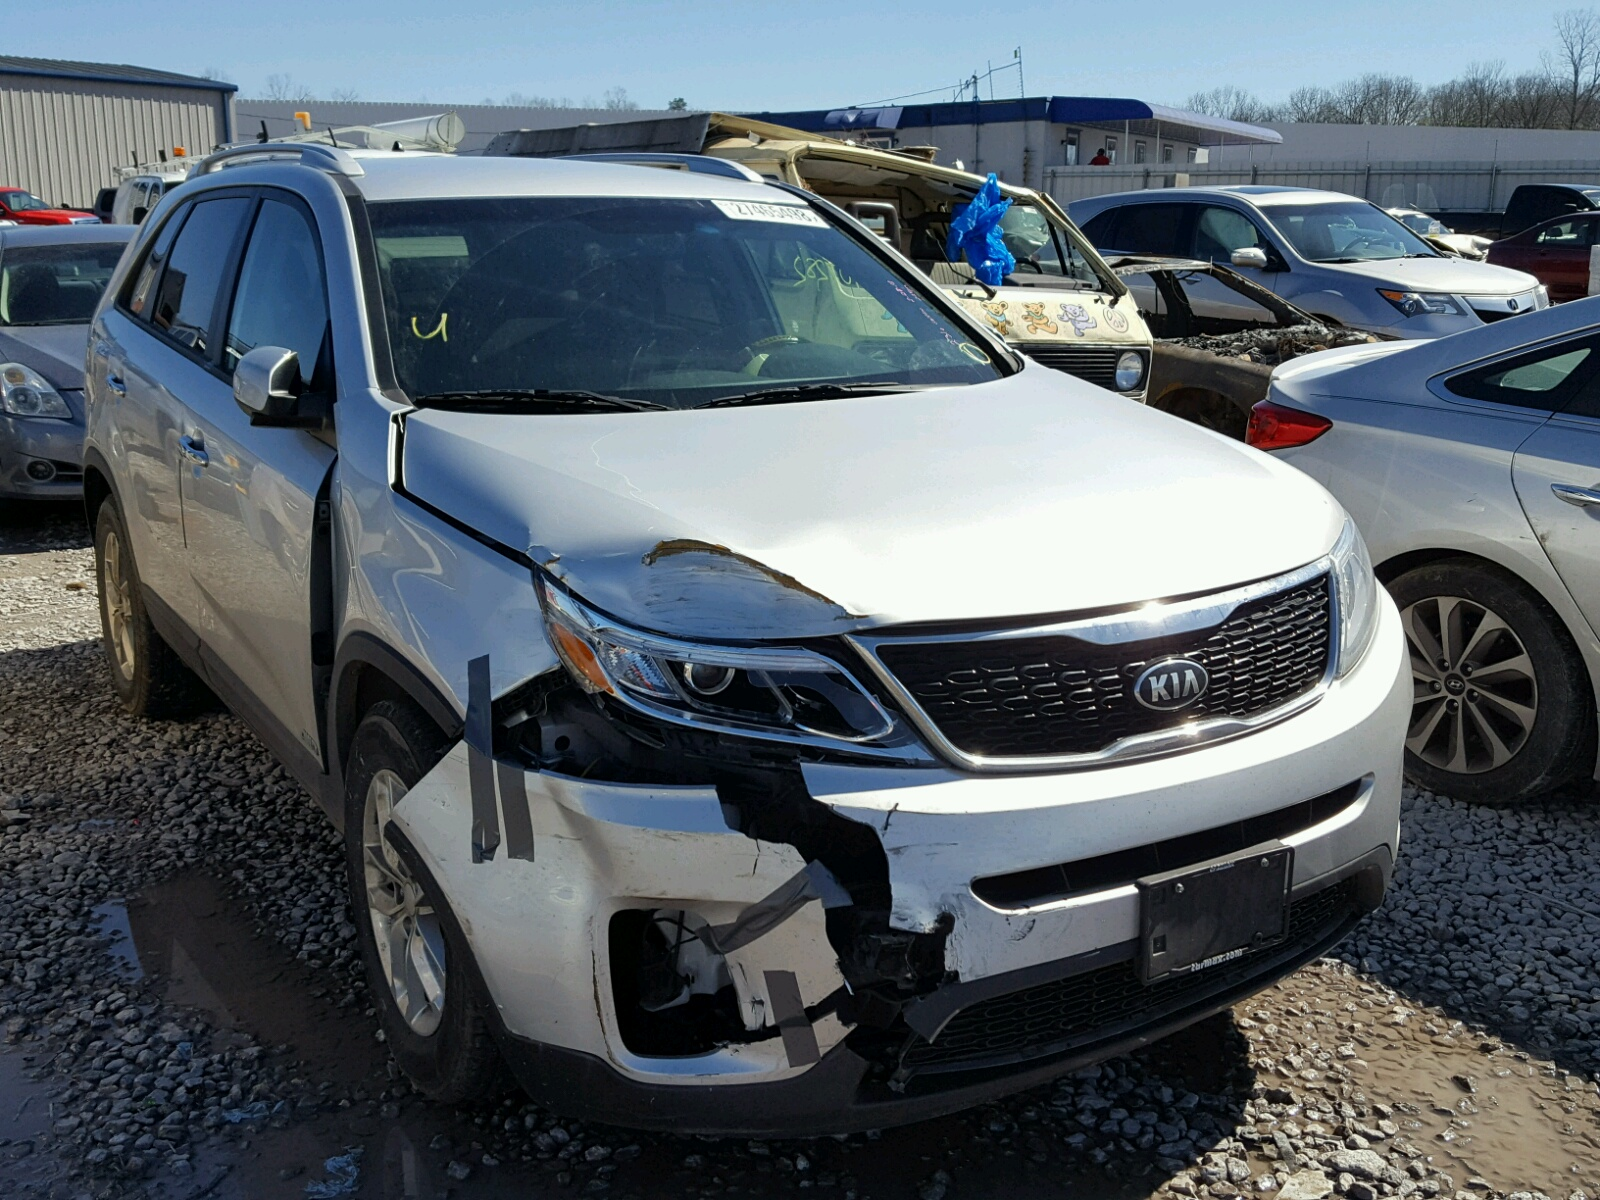 online auction on ended auctions lx lot kia vin title en optima cert copart rouge baton in auto of la carfinder salvage